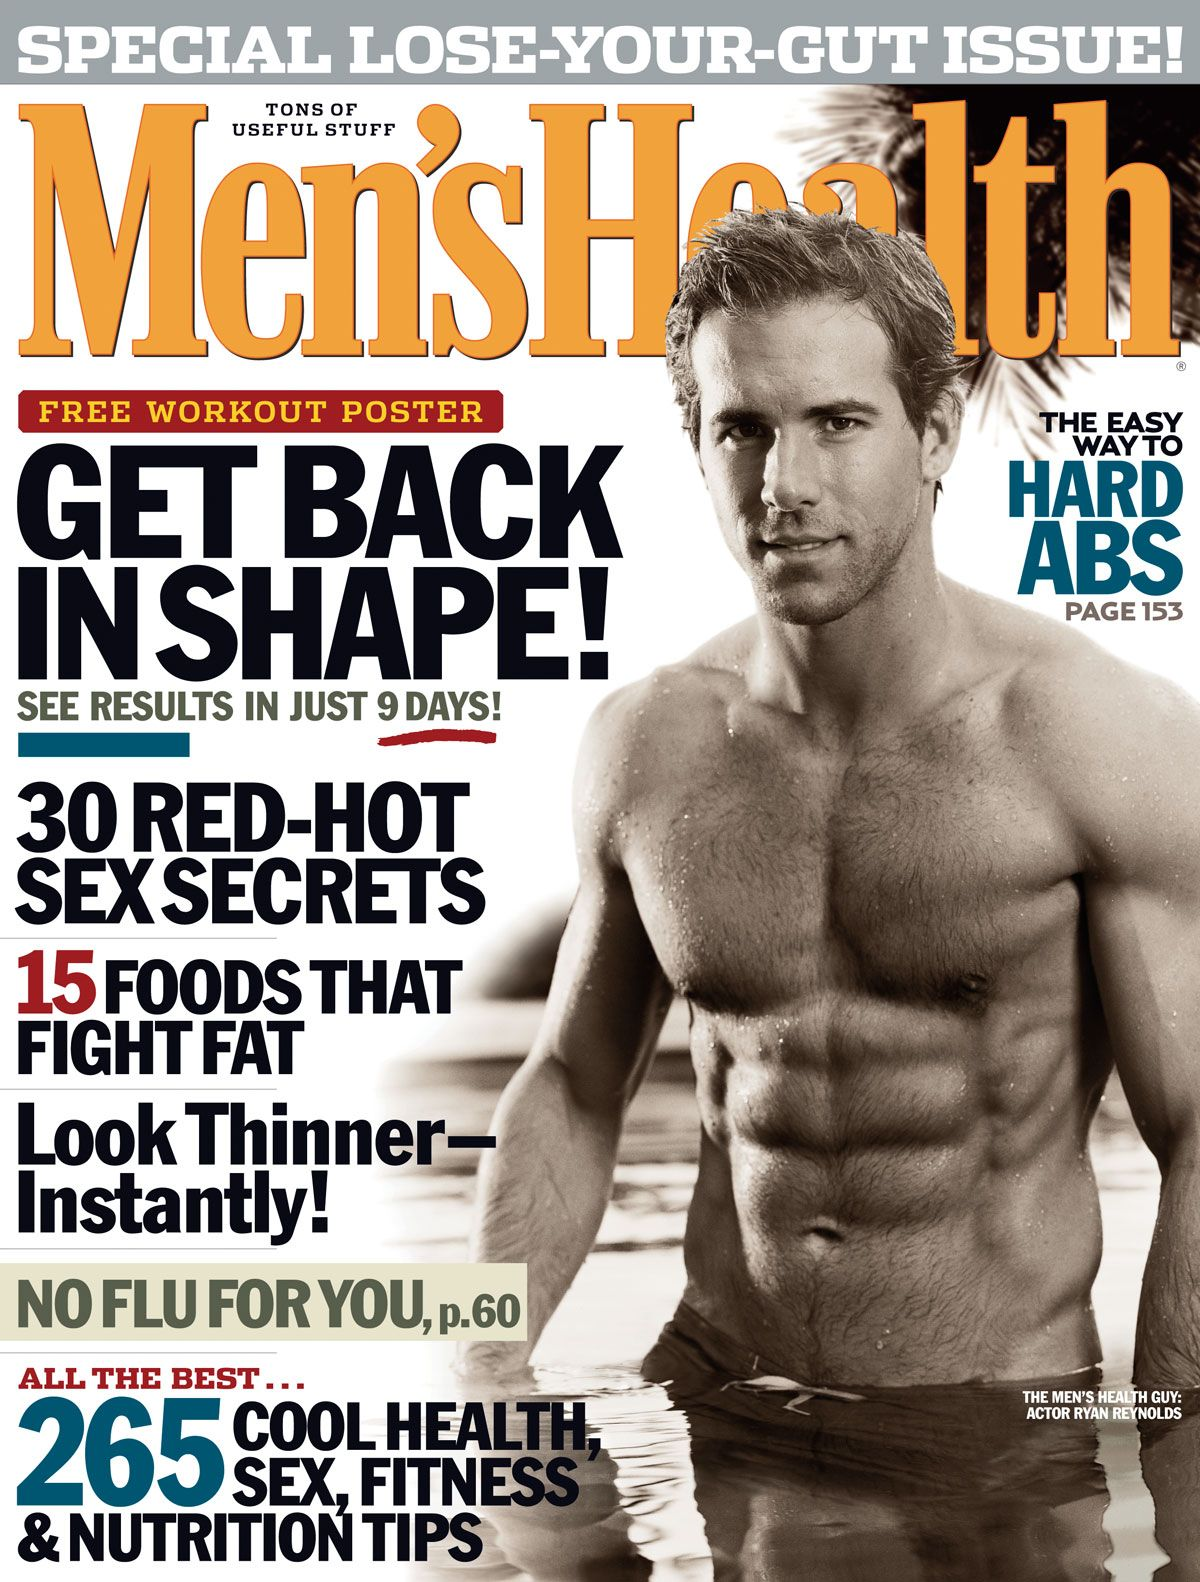 The Men's Health Guide To Zen For Busy Men The Men's Health Guide To Zen For Busy Men new foto